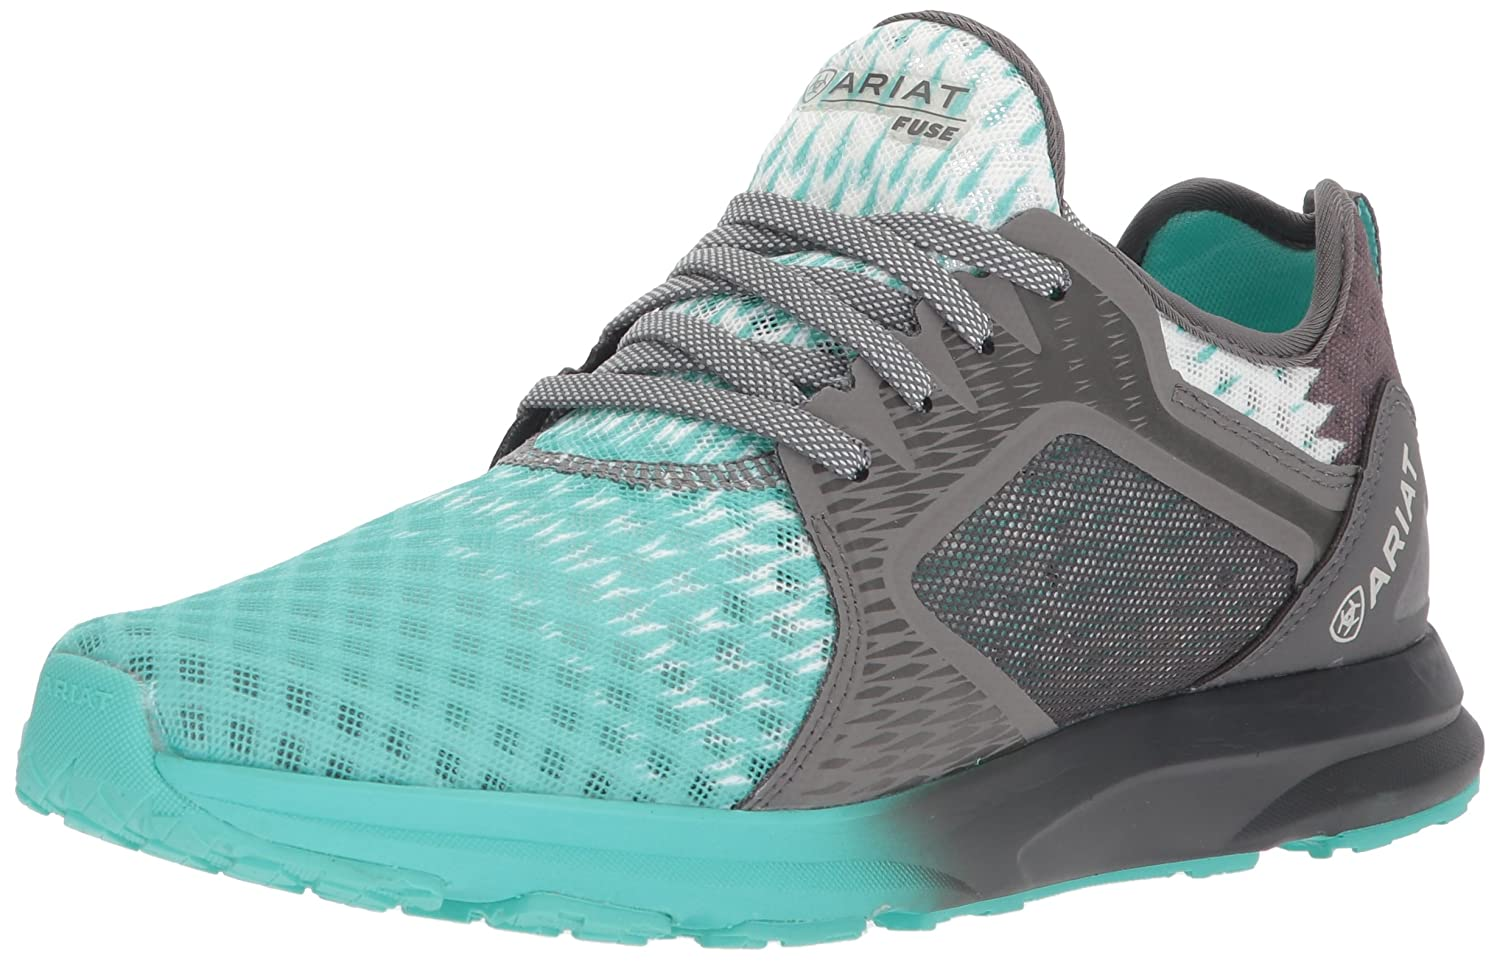 Ariat Women's US|Turquoise Fuse Athletic Shoe B076MMM9ZD 6.5 B(M) US|Turquoise Women's Gray Ombre Mesh ff096e